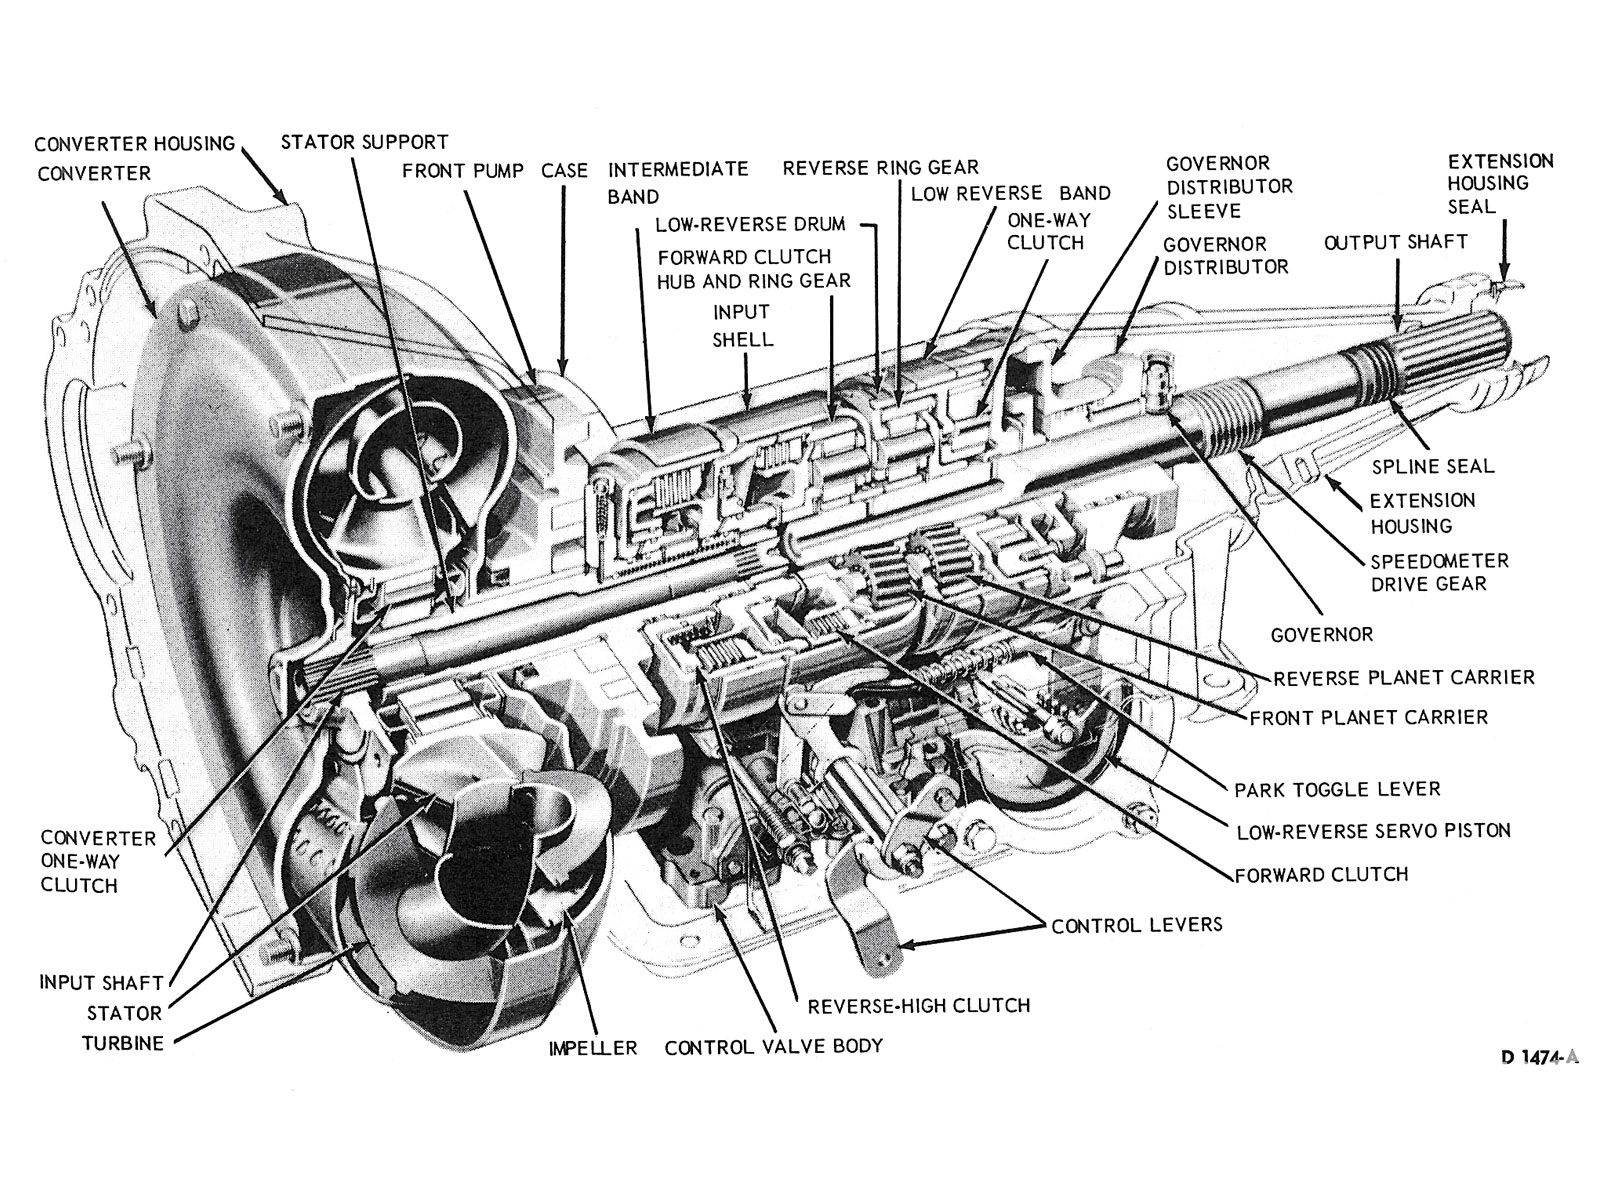 diagram 5r55s oil file fx47322 Ford CD4E Transmission Diagram everything you need to know about